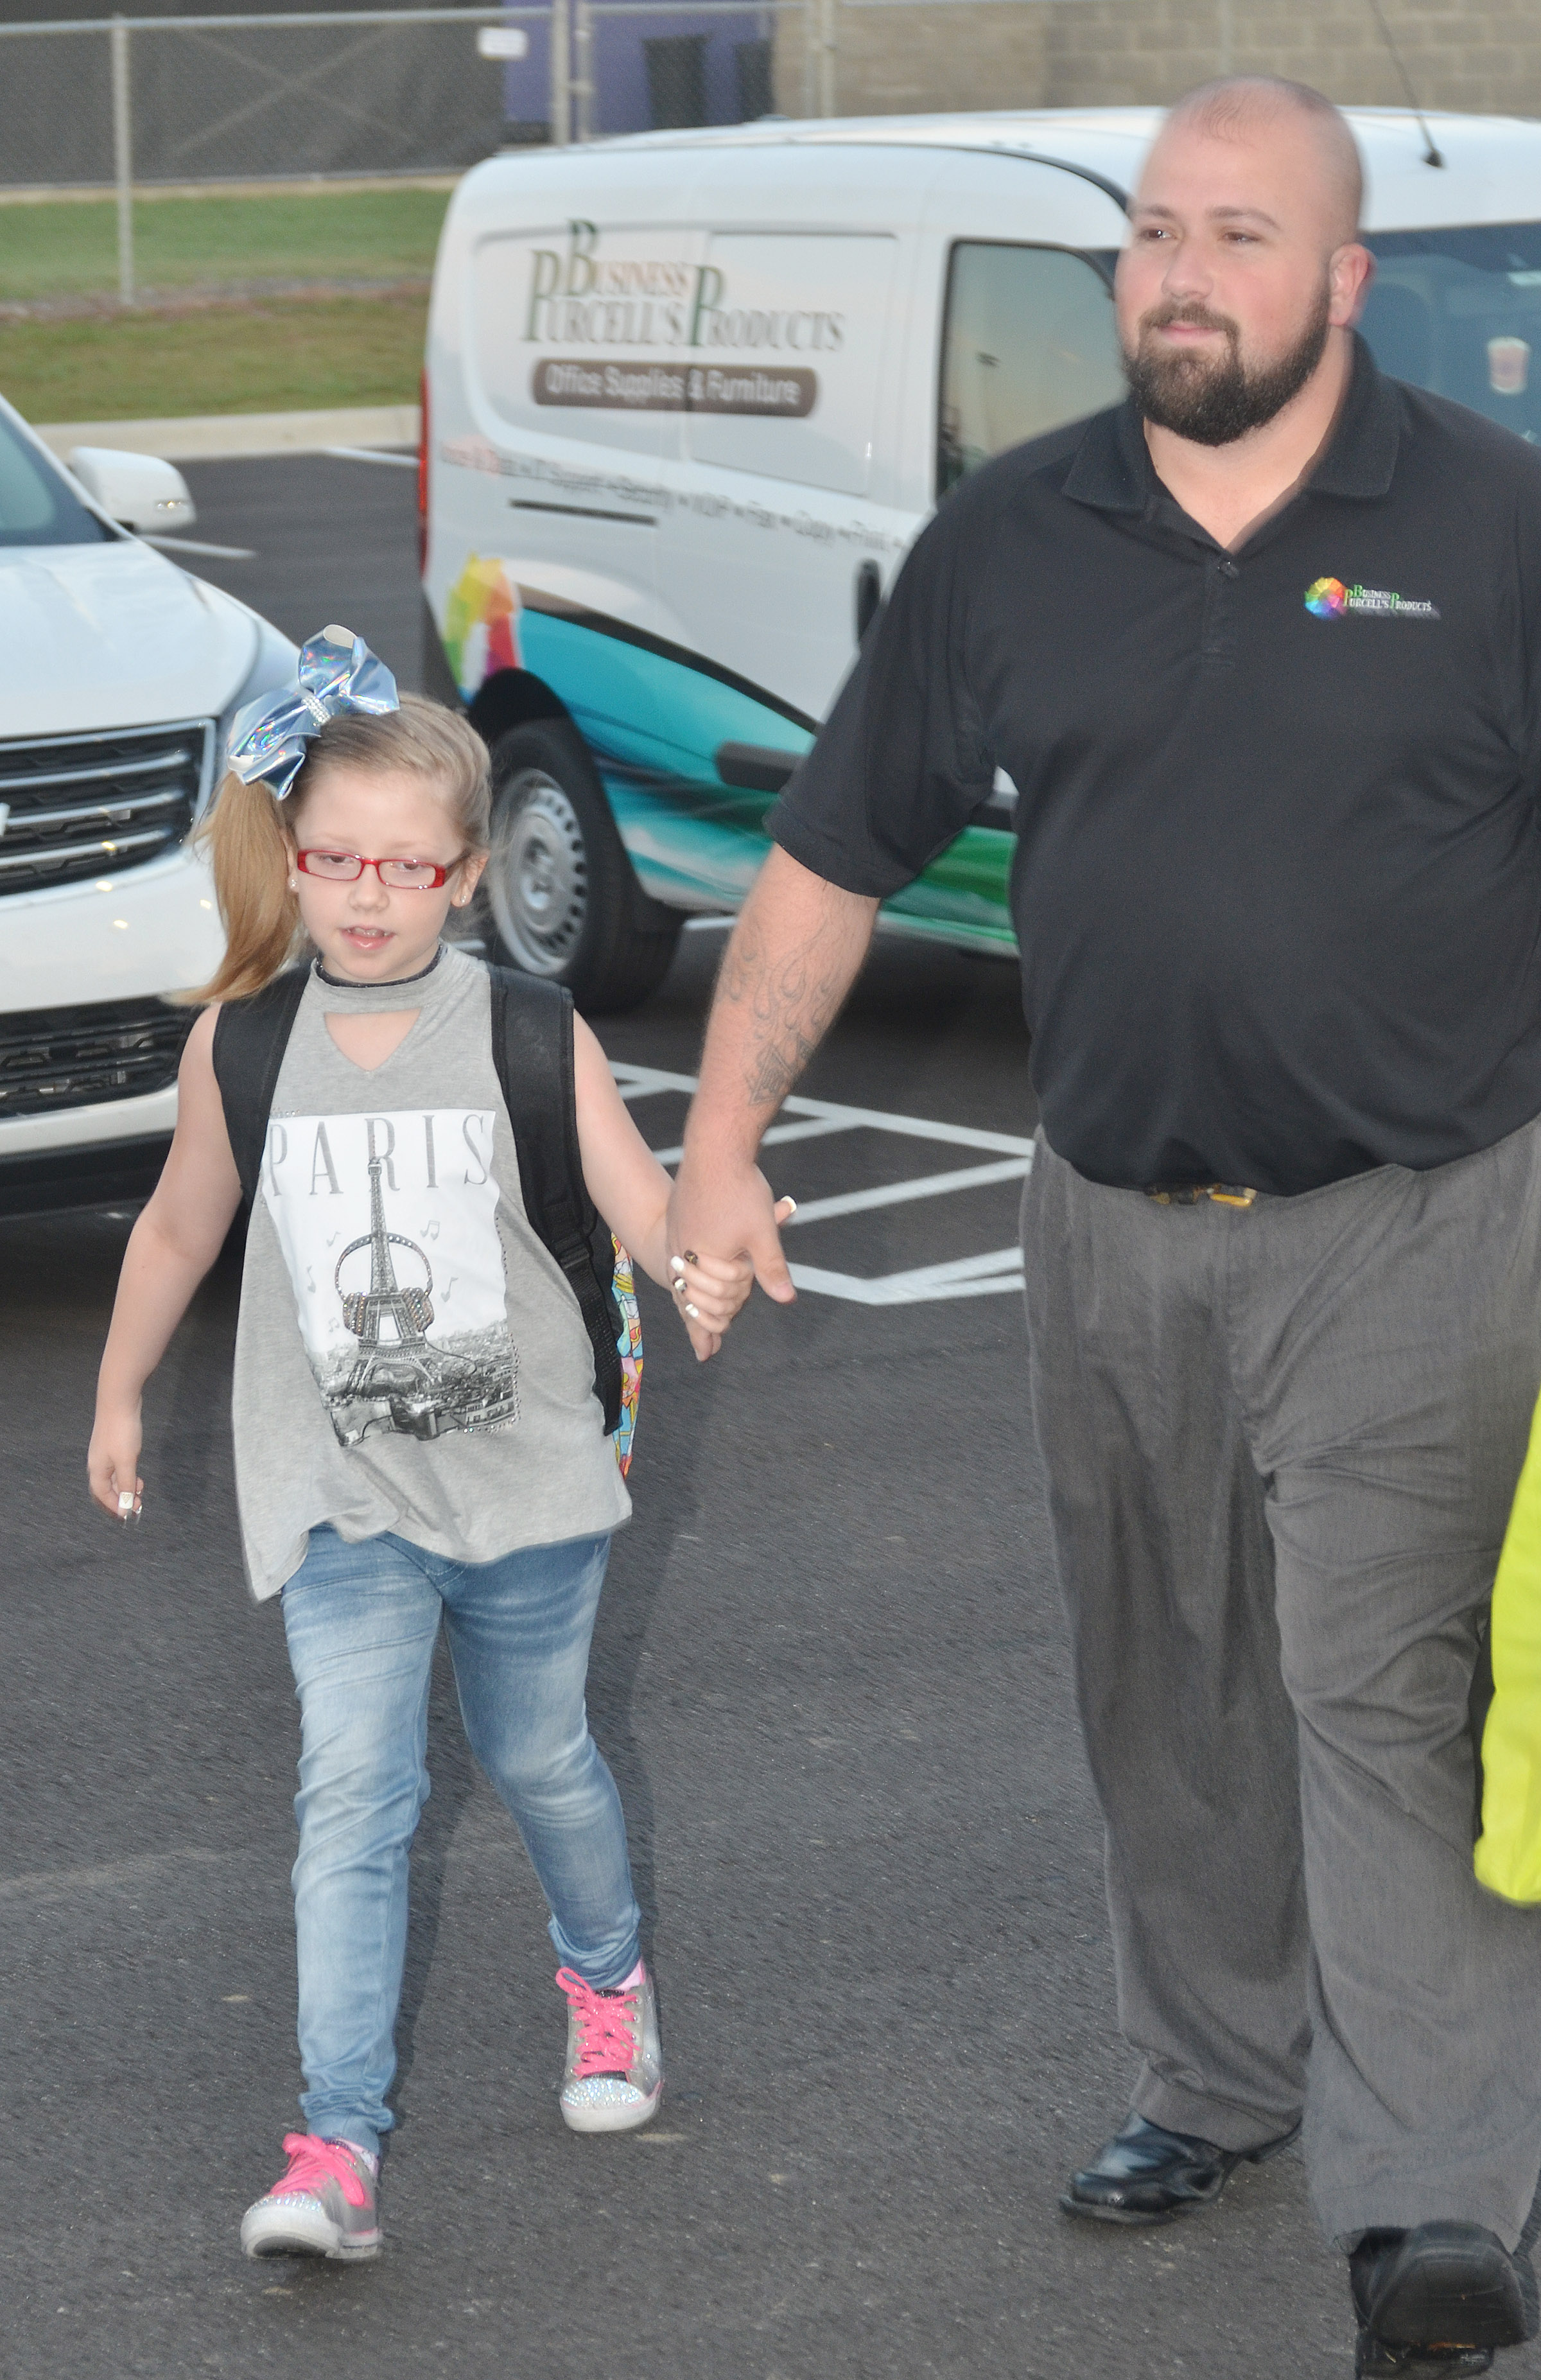 CES fourth-grader Gracie Pendleton walks into school with her dad, Dustin.